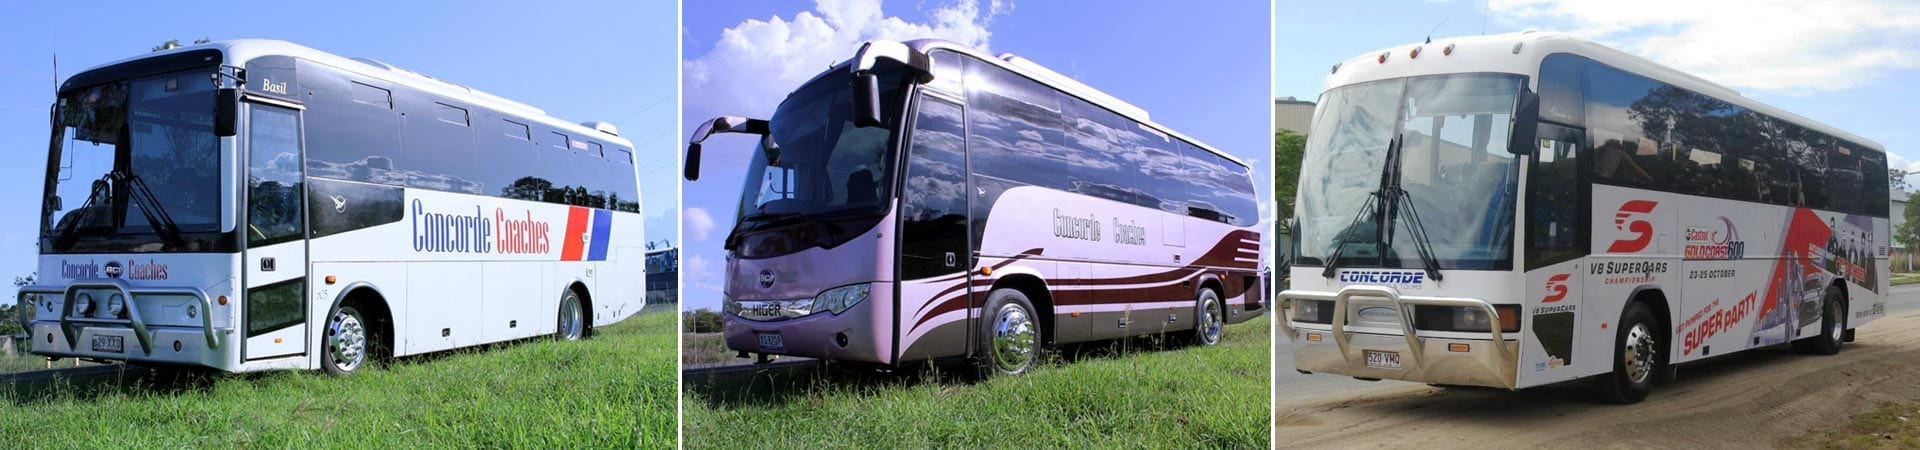 Bus and Coach Hire Brisbane